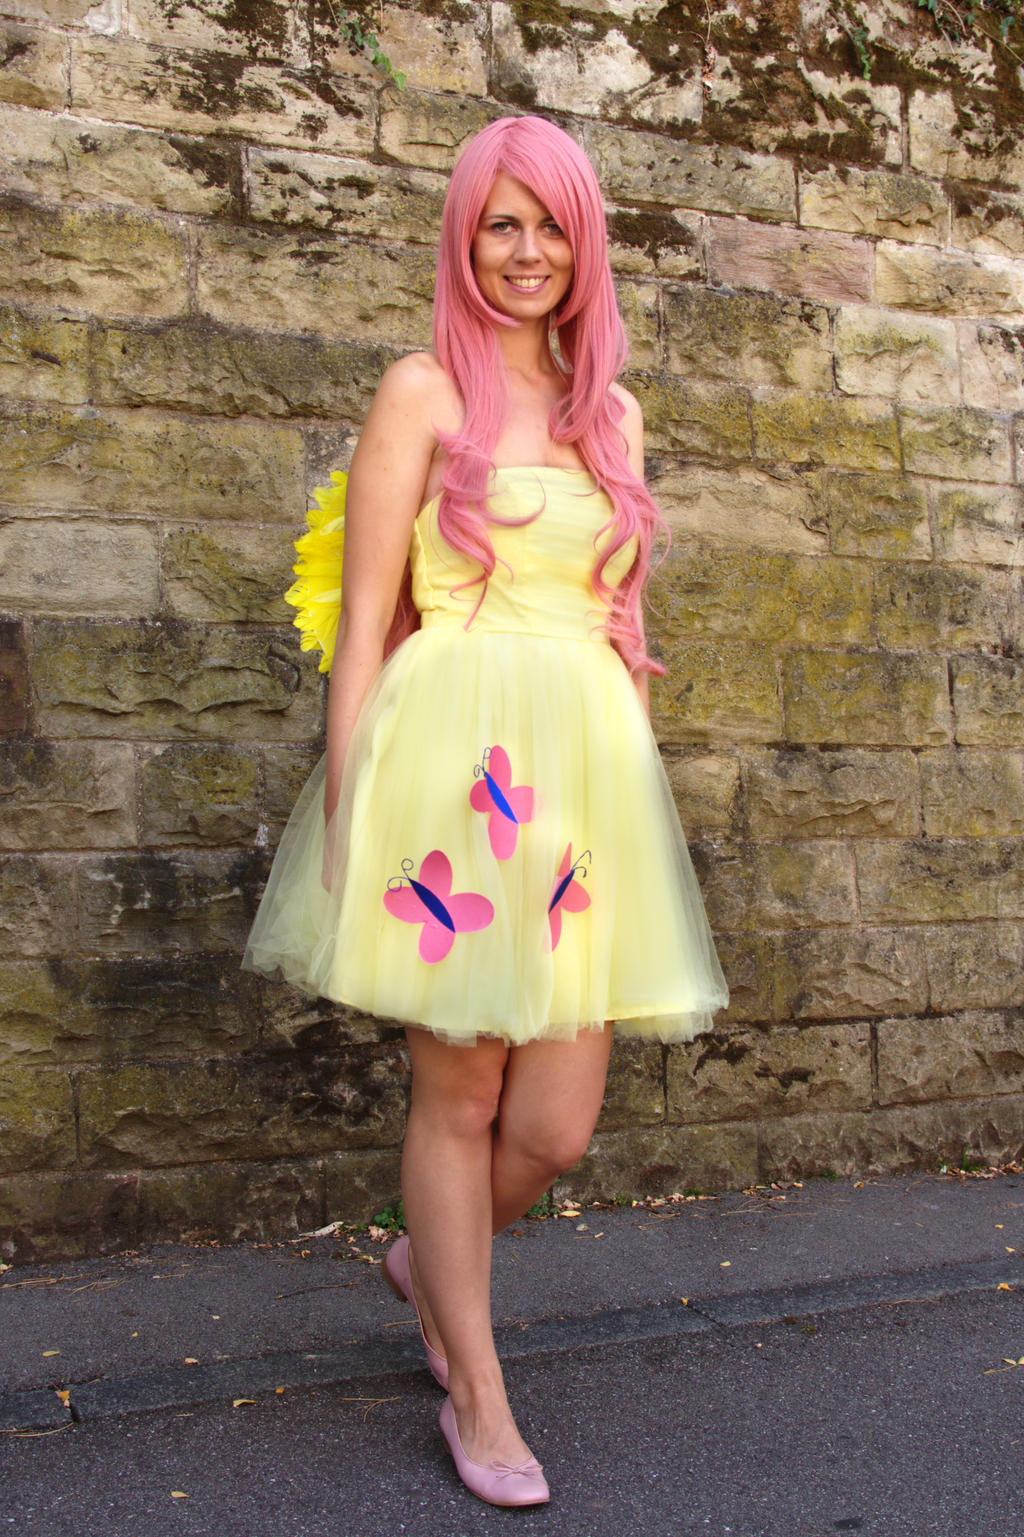 fluttershy cosplay by Sioxanne on DeviantArt